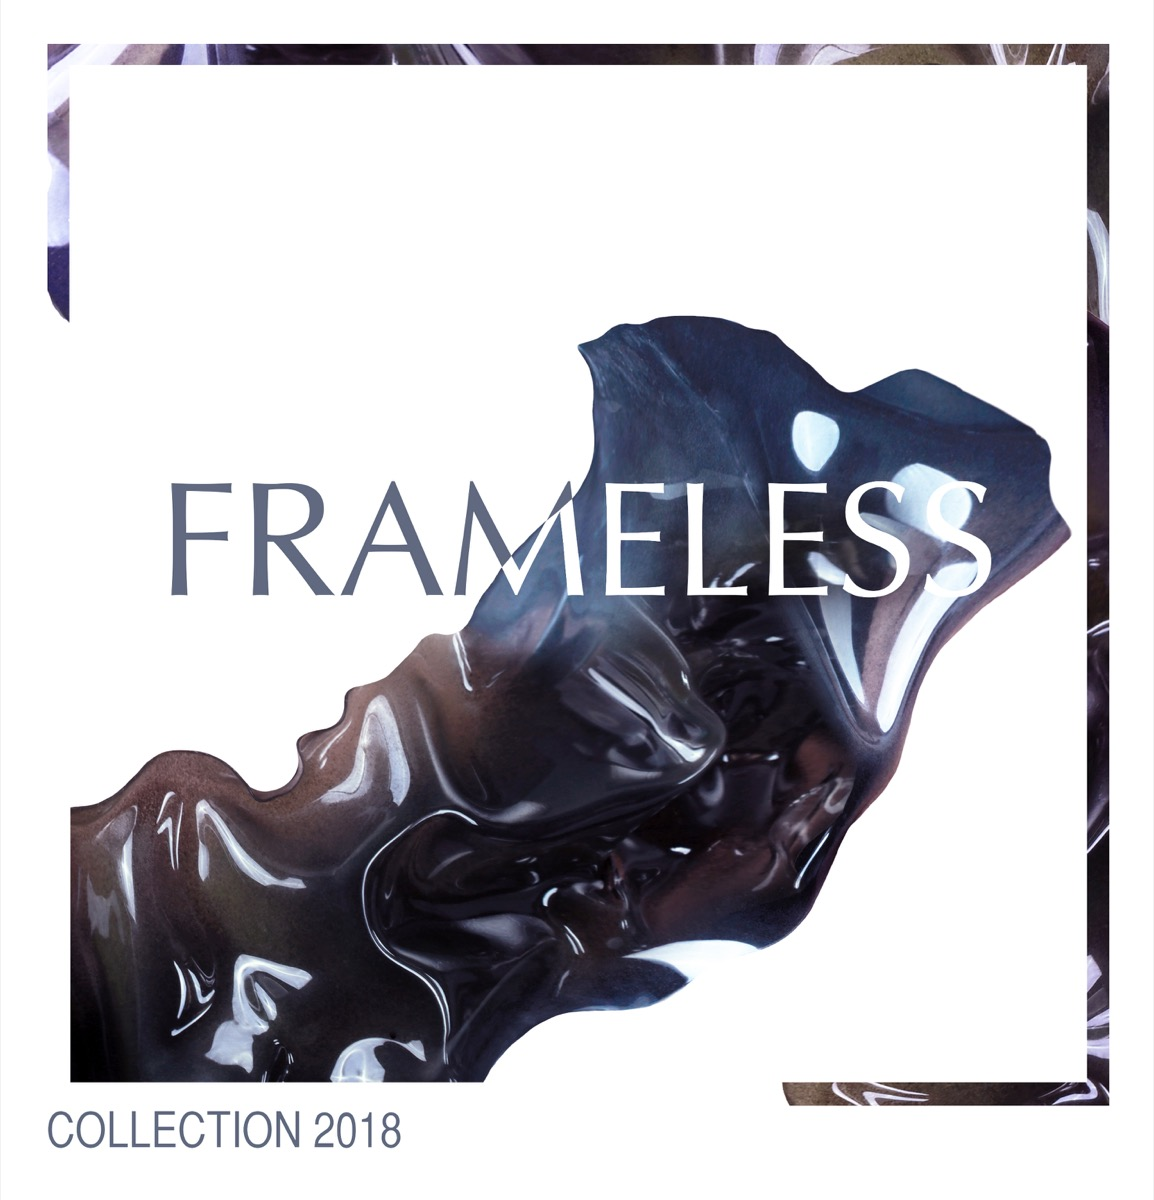 Bild zu Kollektion: Frameless - Collection 2018